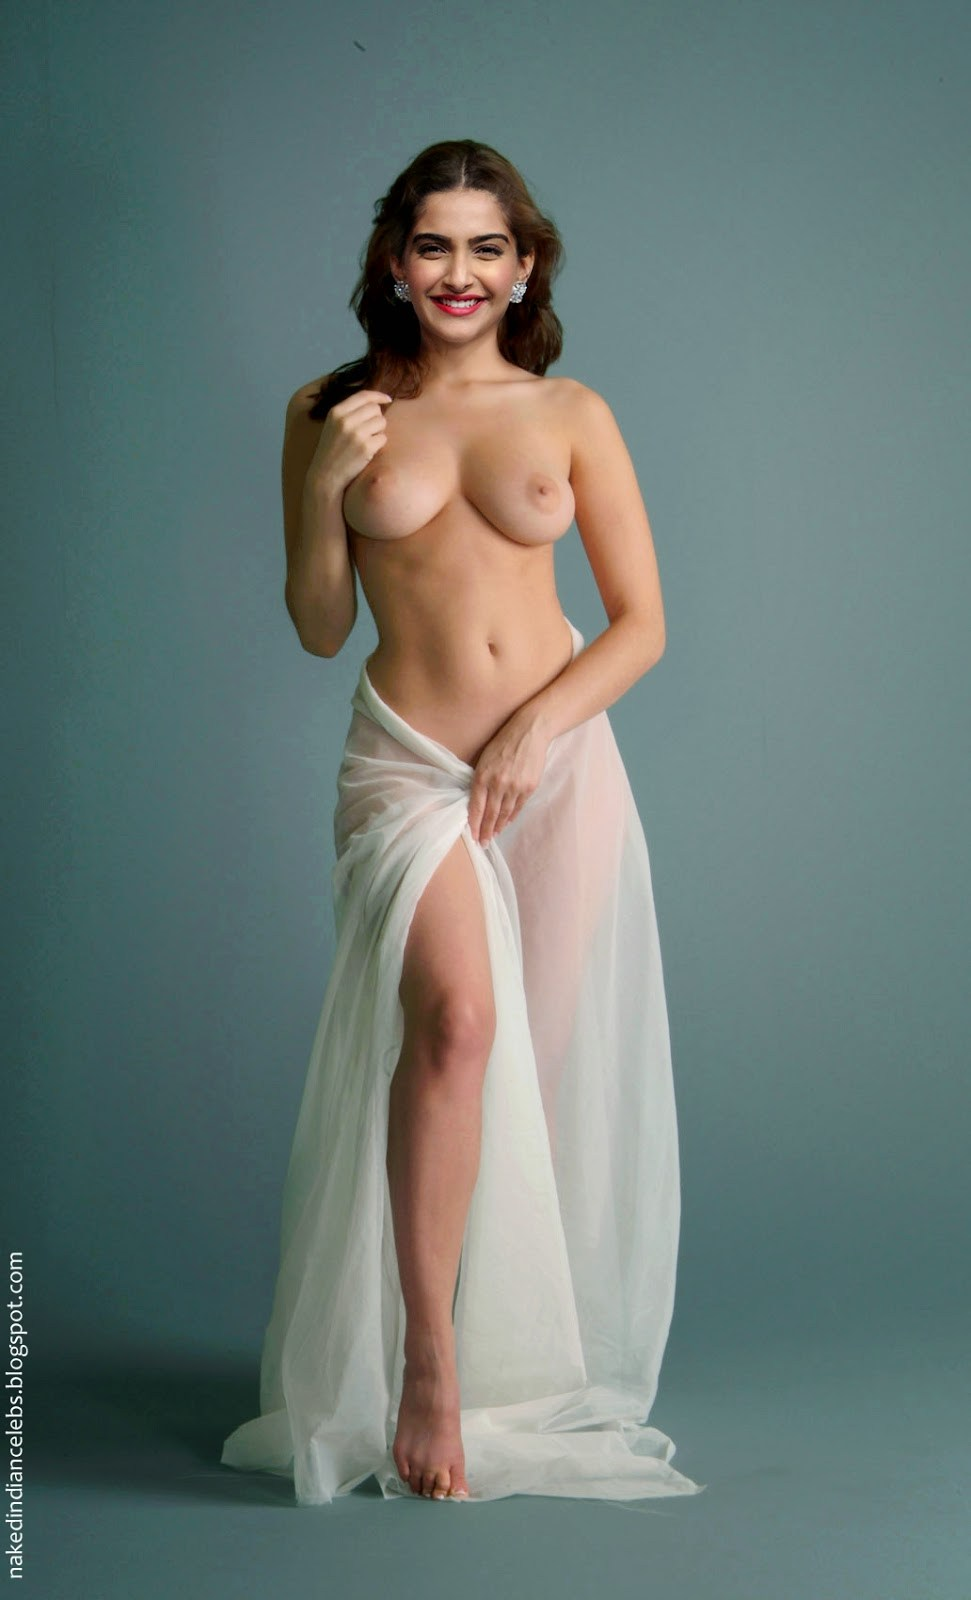 Miley cyrus uncensored nude pictures-7305